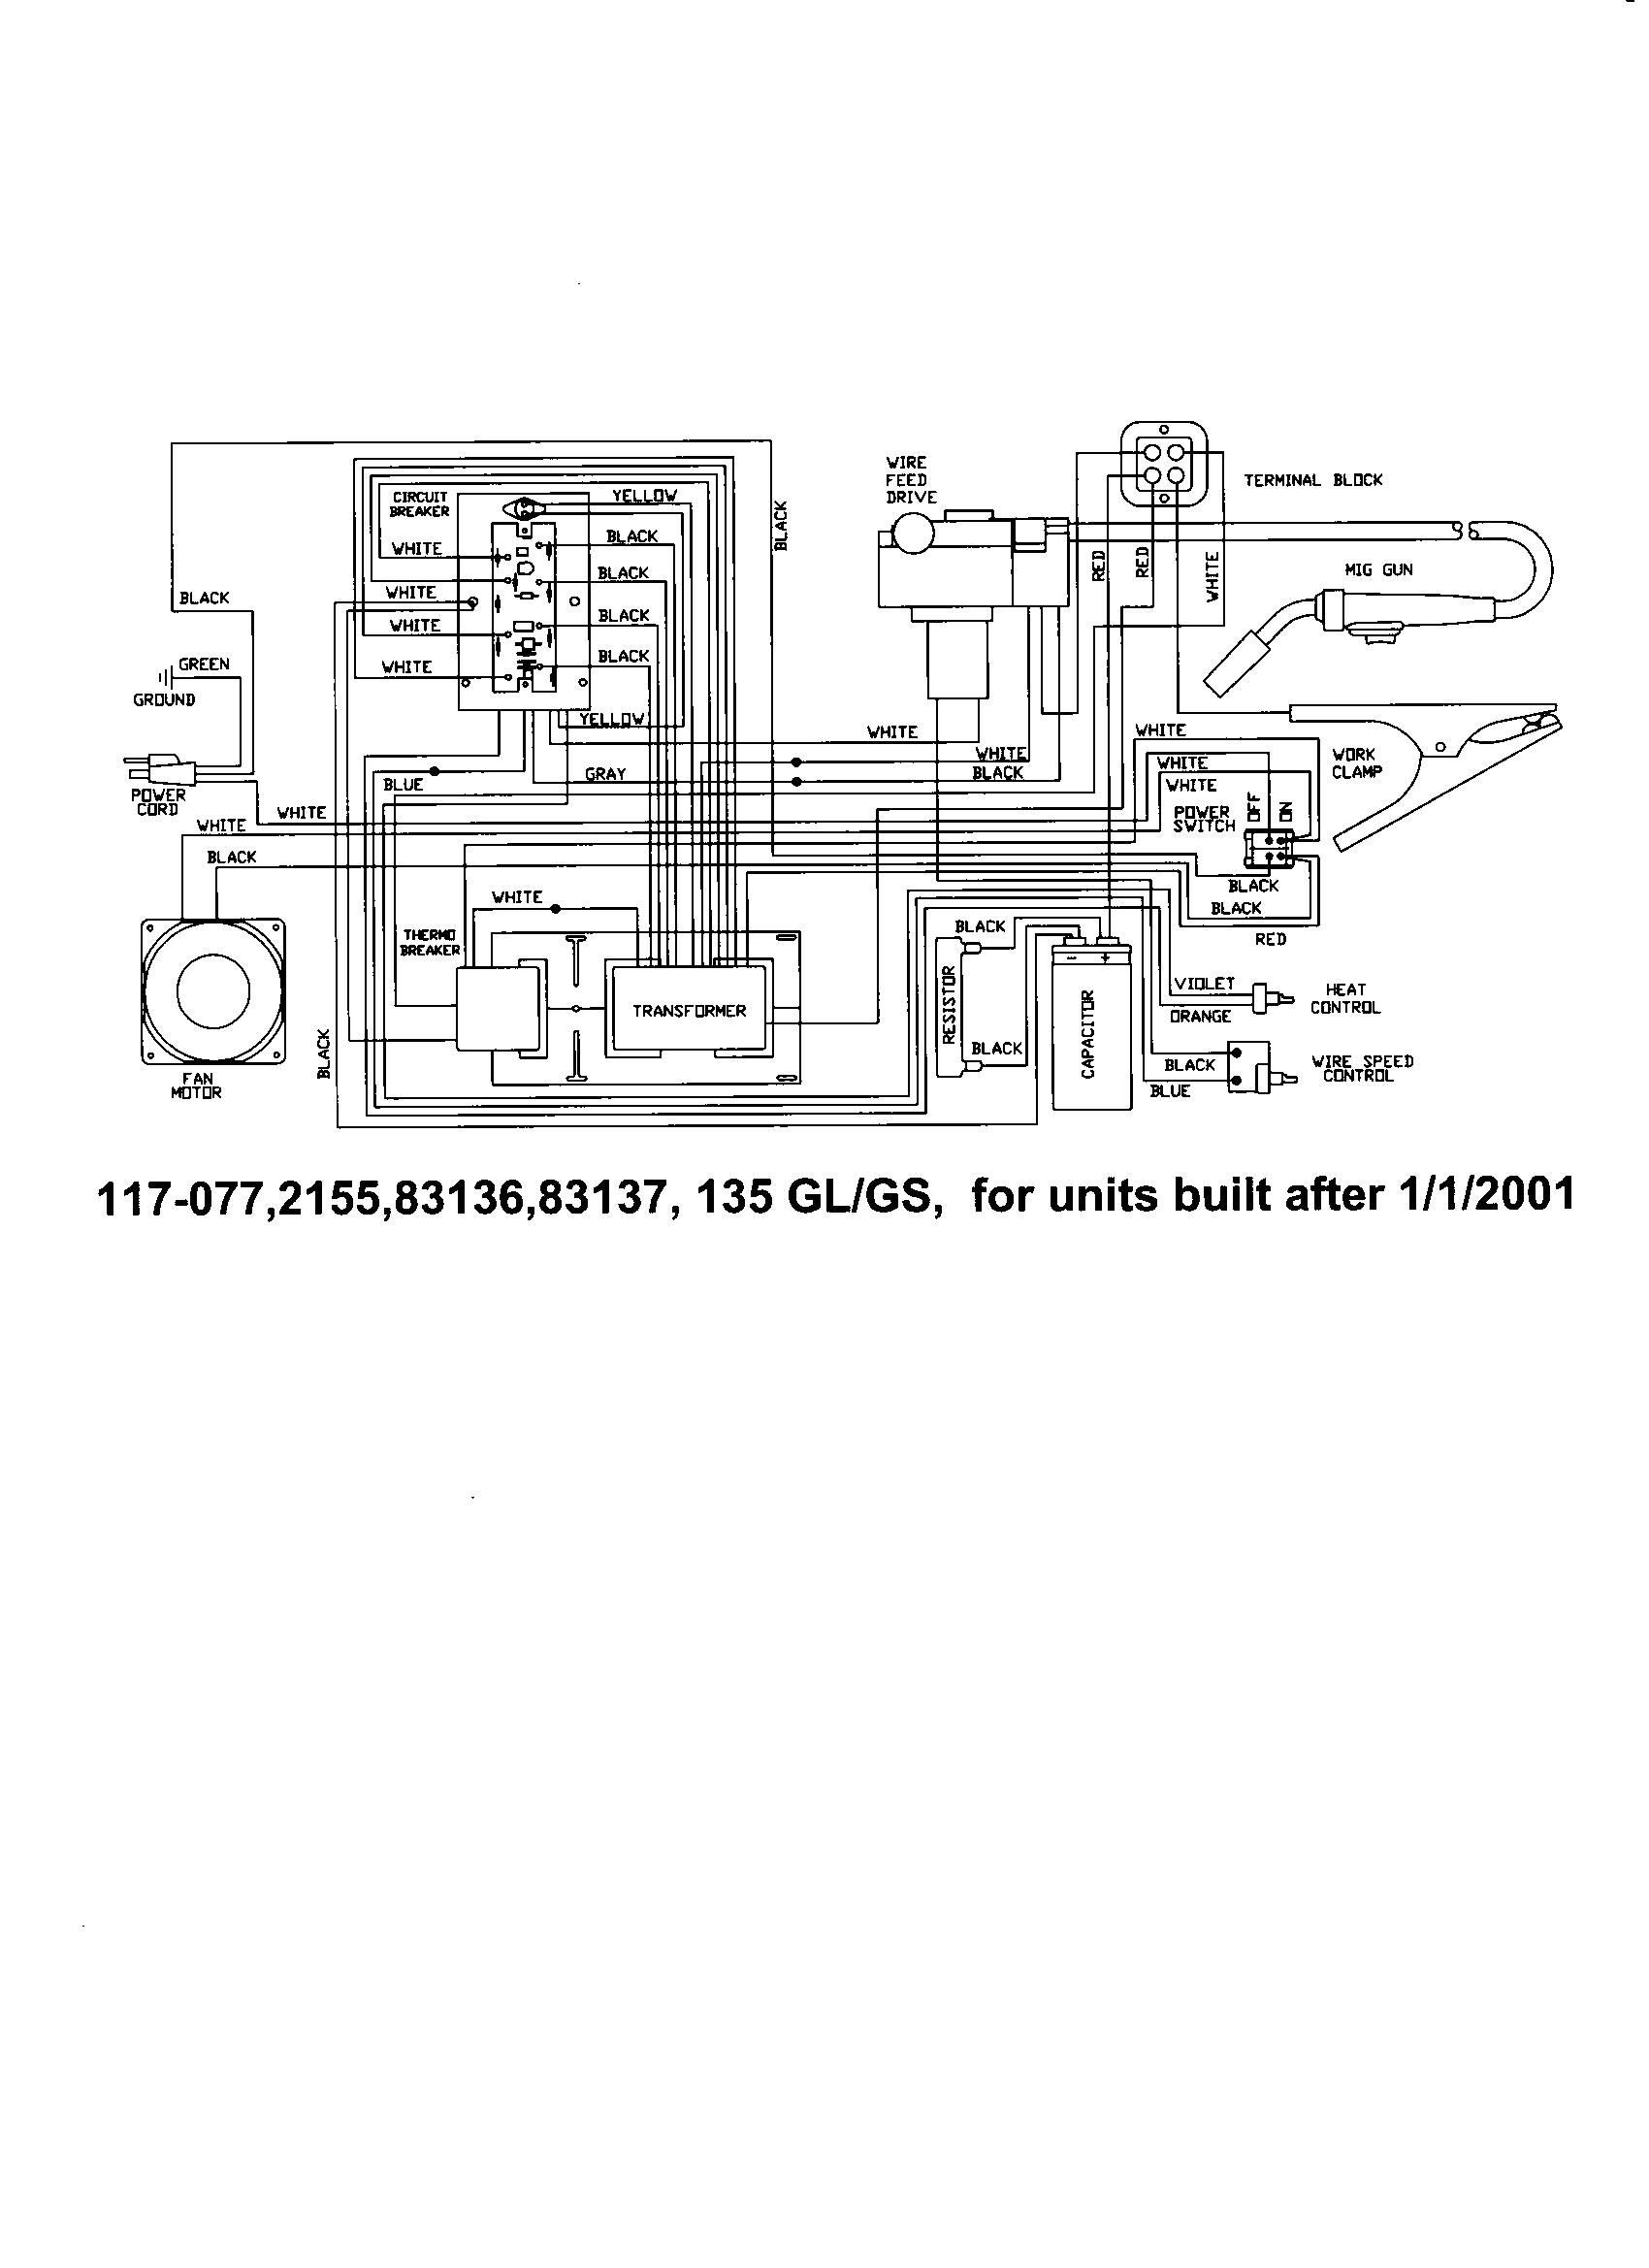 Lincoln Mig Welder Parts Diagram